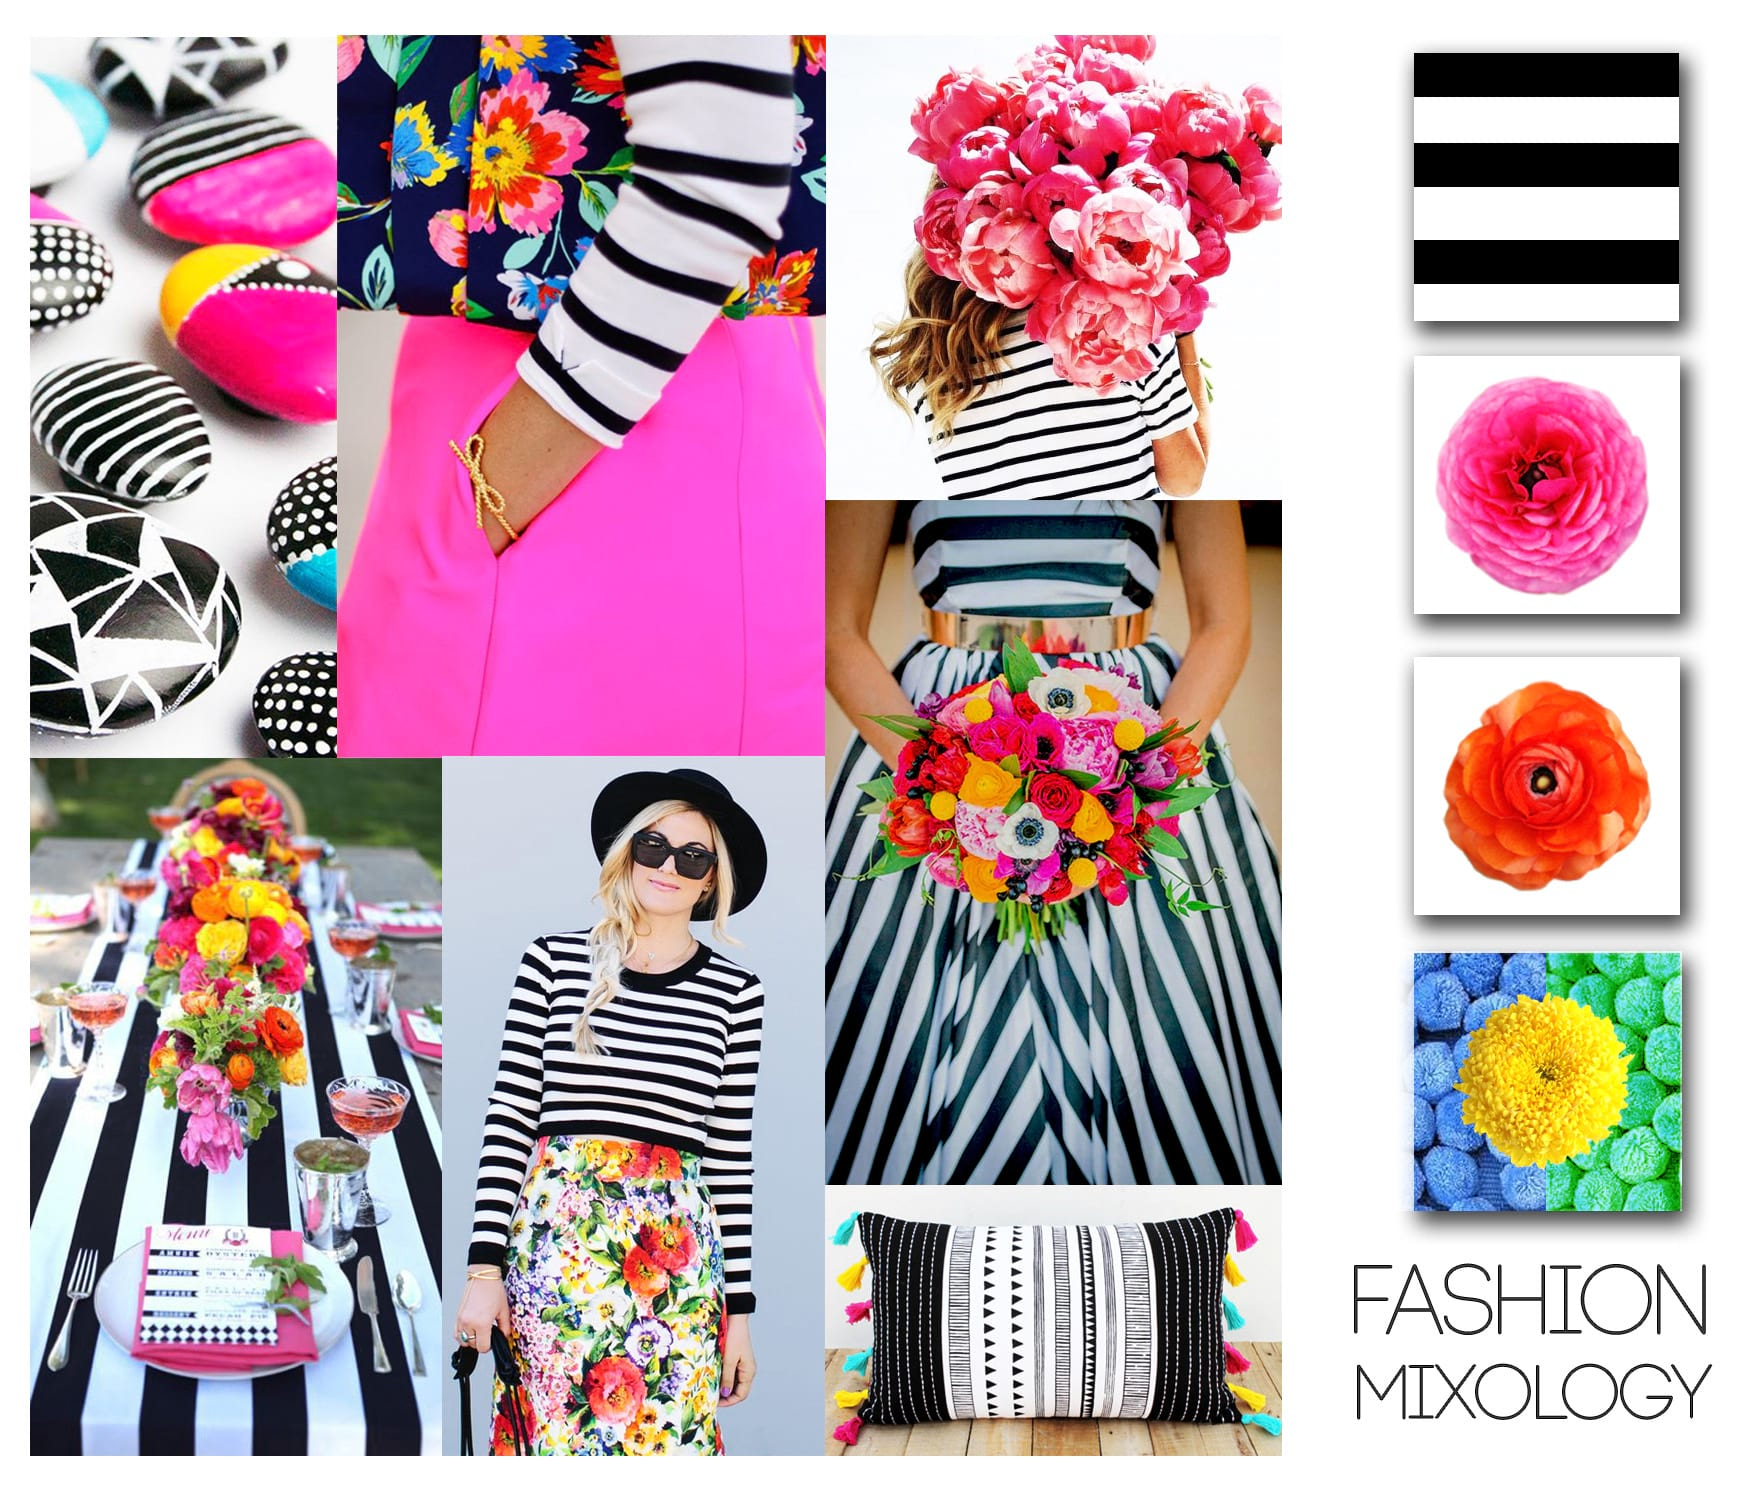 Decor Meets Fashion - Mixing Prints: Desaturated Stripes & Bright Florals 16